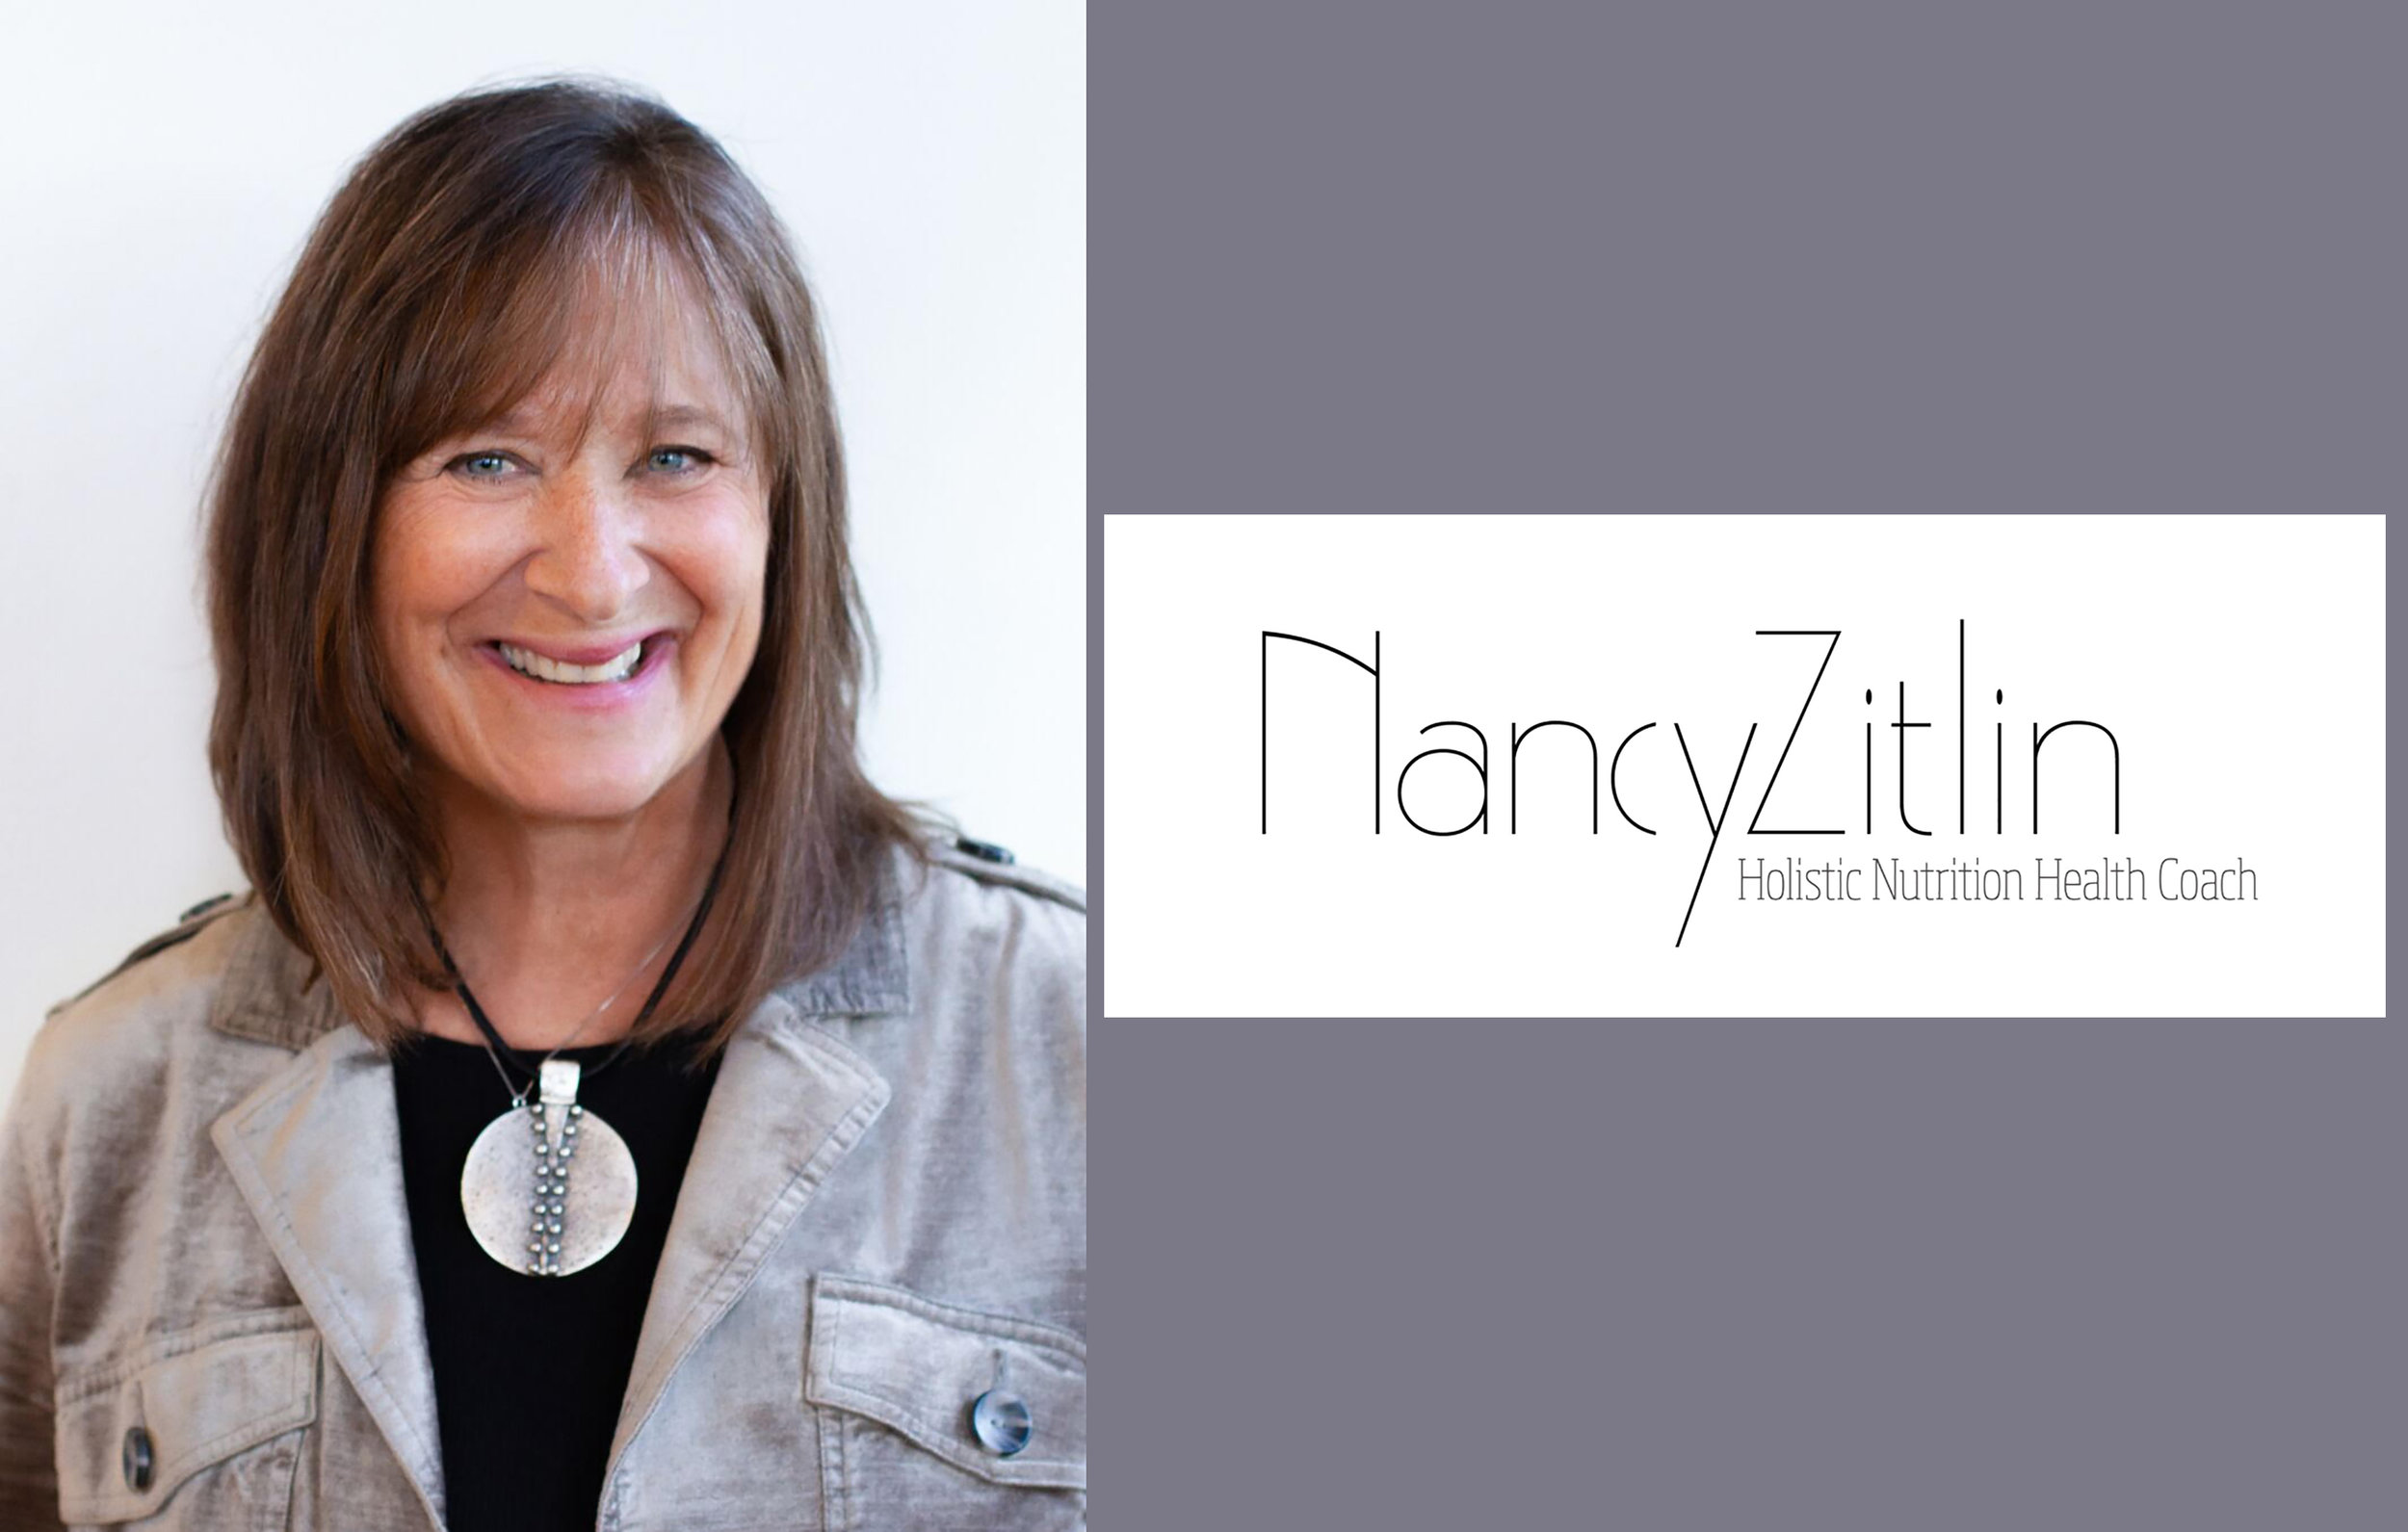 HOLISTIC NUTRITION HEALTH COACH - It's never too late to rewrite your storyFREE 1 hour consultation ($200 value)New clients onlywww.nancyzitlin.comnancyzitlin@gmail.com847.612.1373